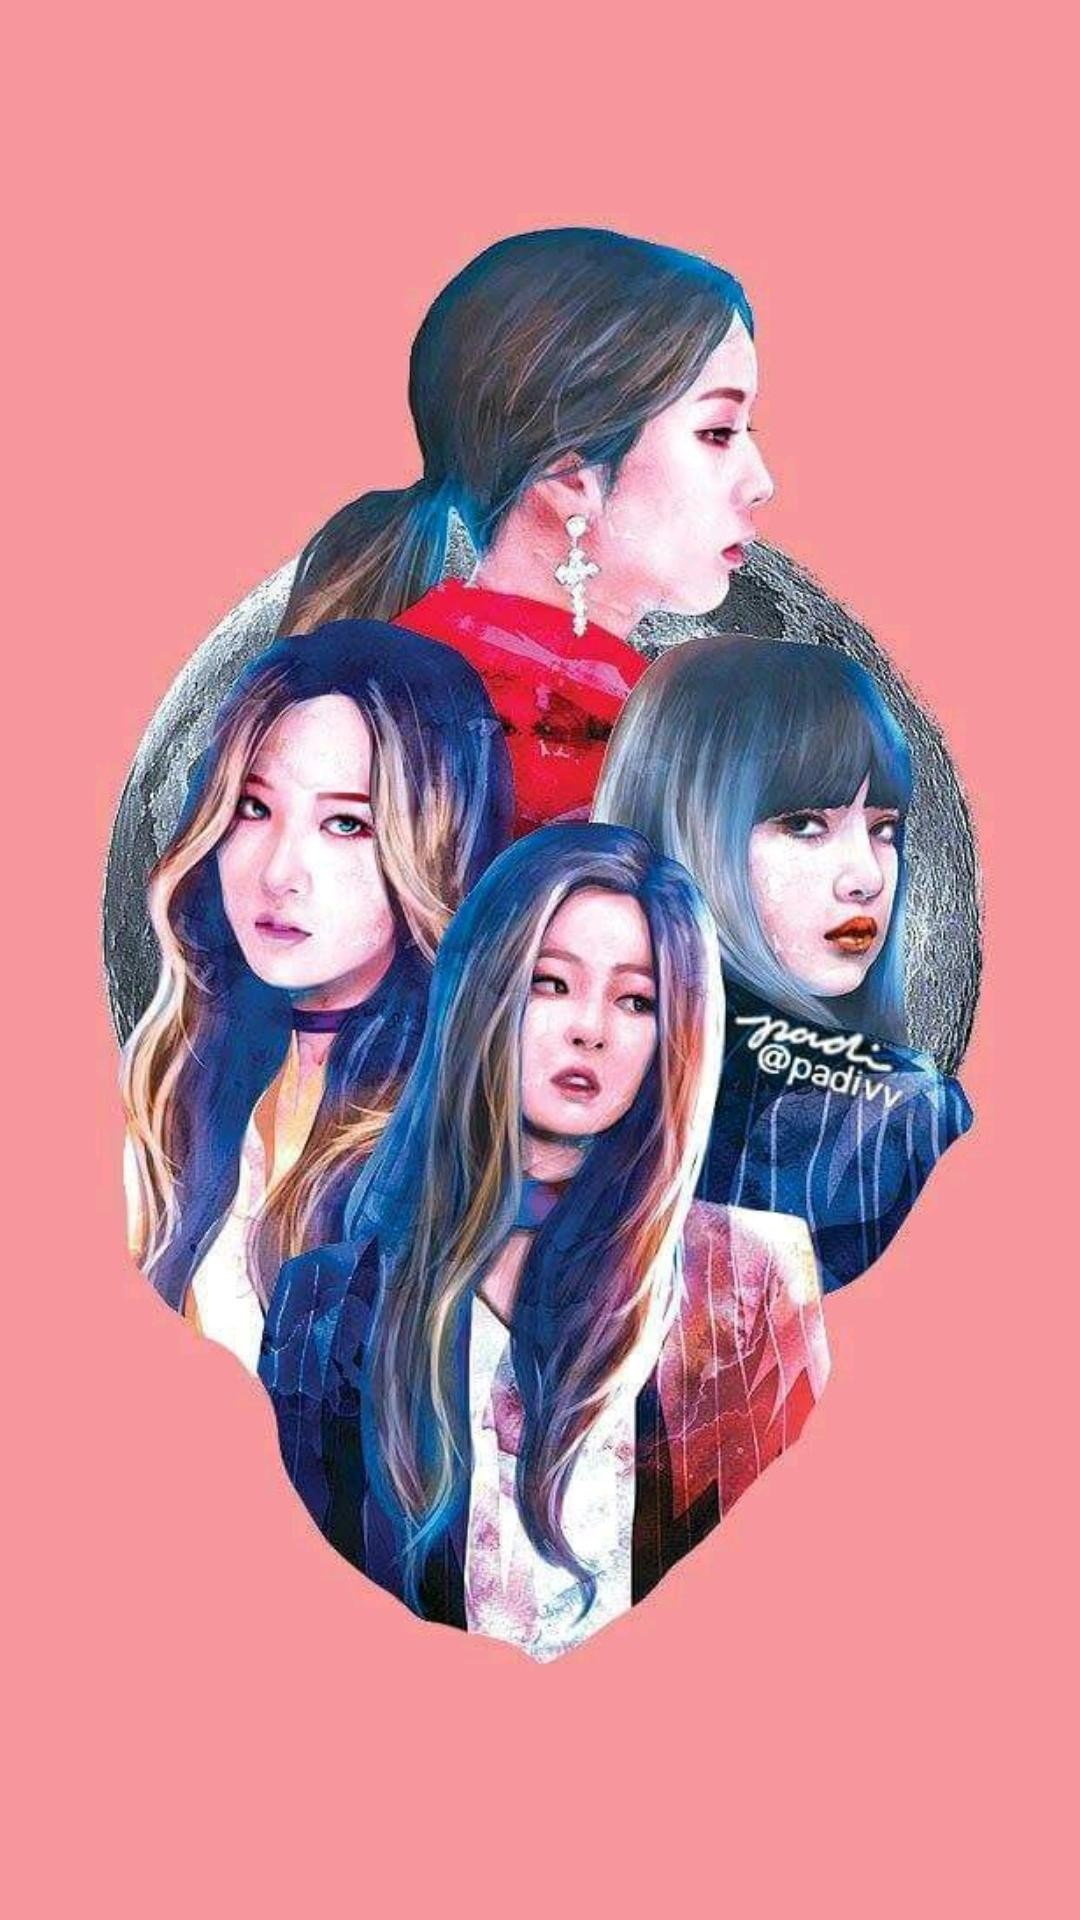 Bts And Blackpink Anime Wallpapers Posted By Christopher Sellers